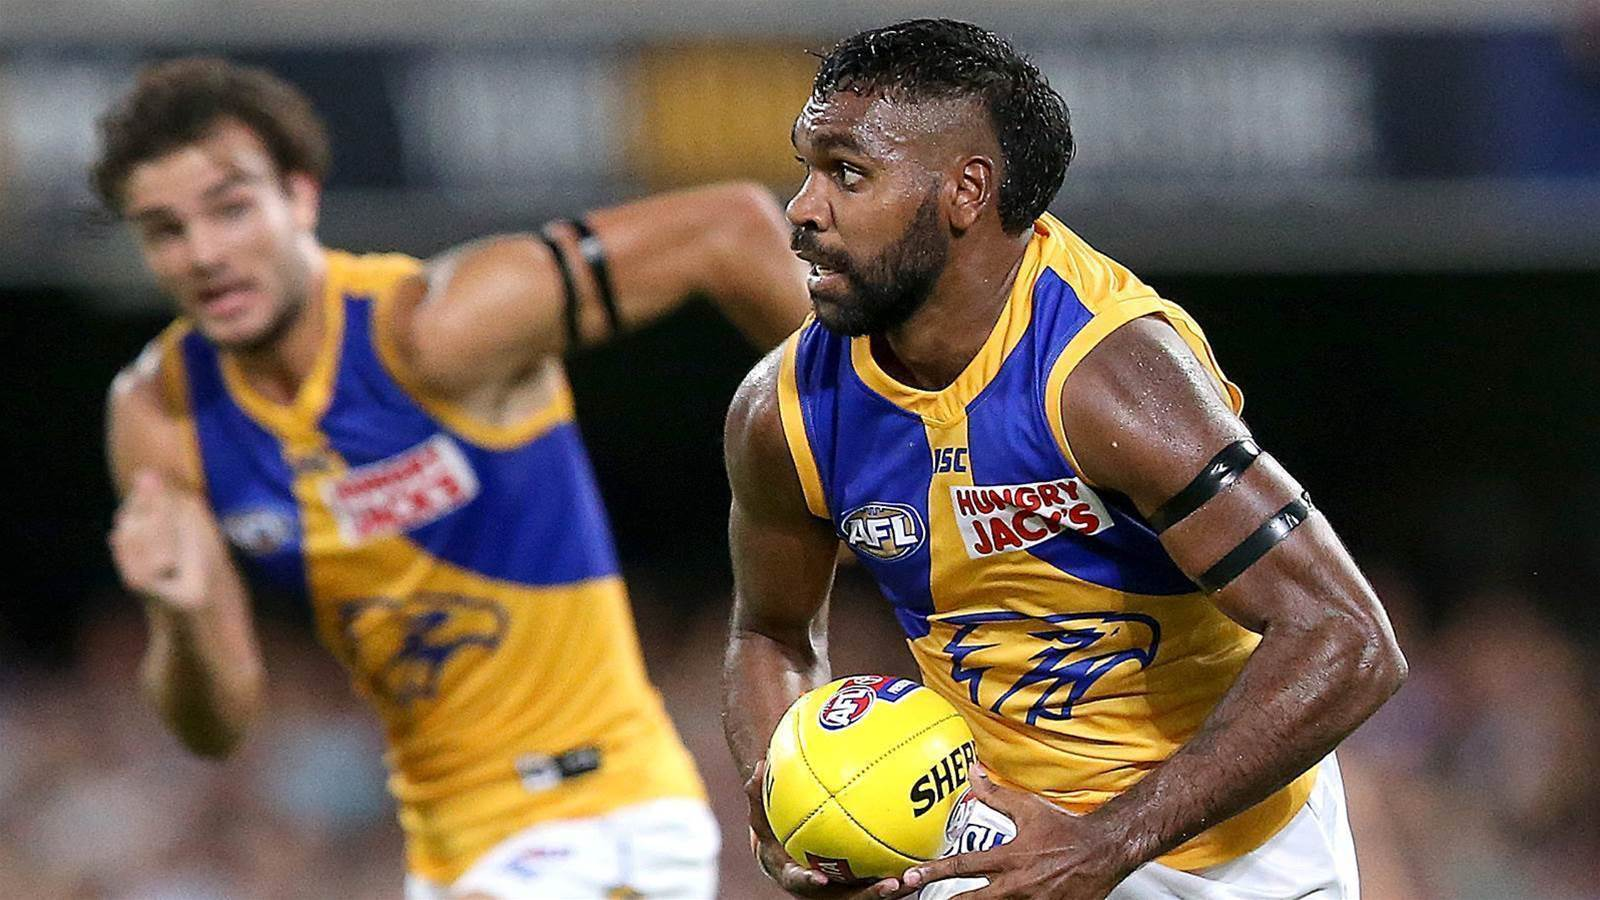 Two year ban for racist AFL fan